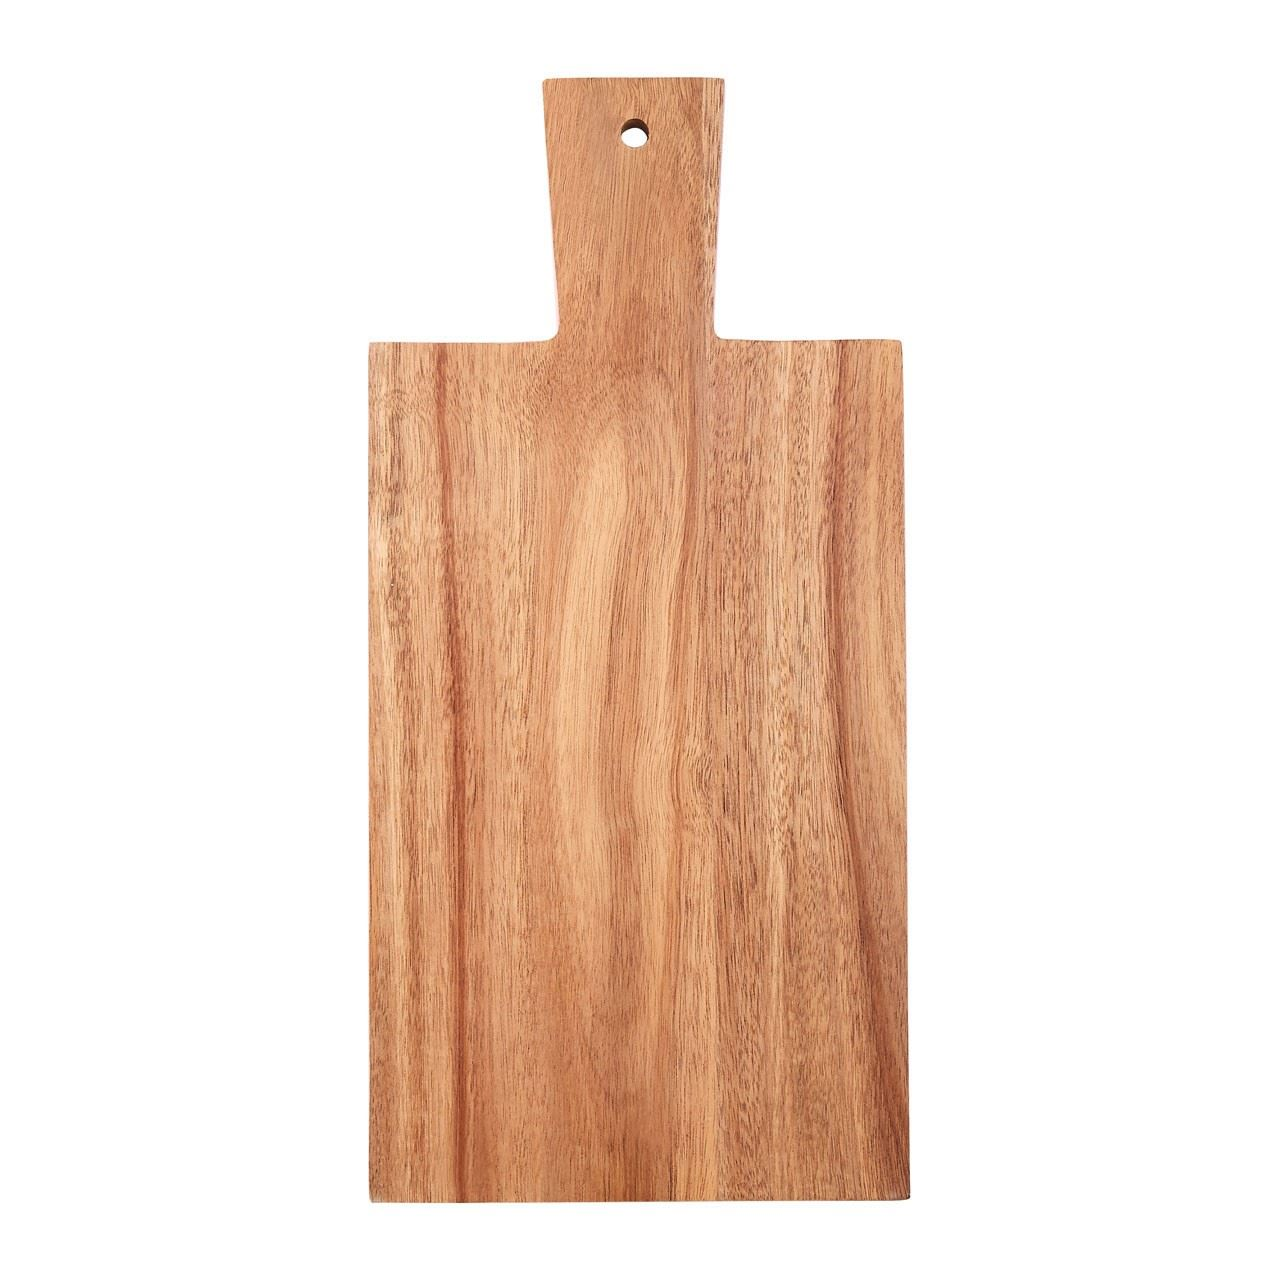 Chopping-Boards-Wooden-Cutting-Serving-Naturally-Antibacterial thumbnail 27